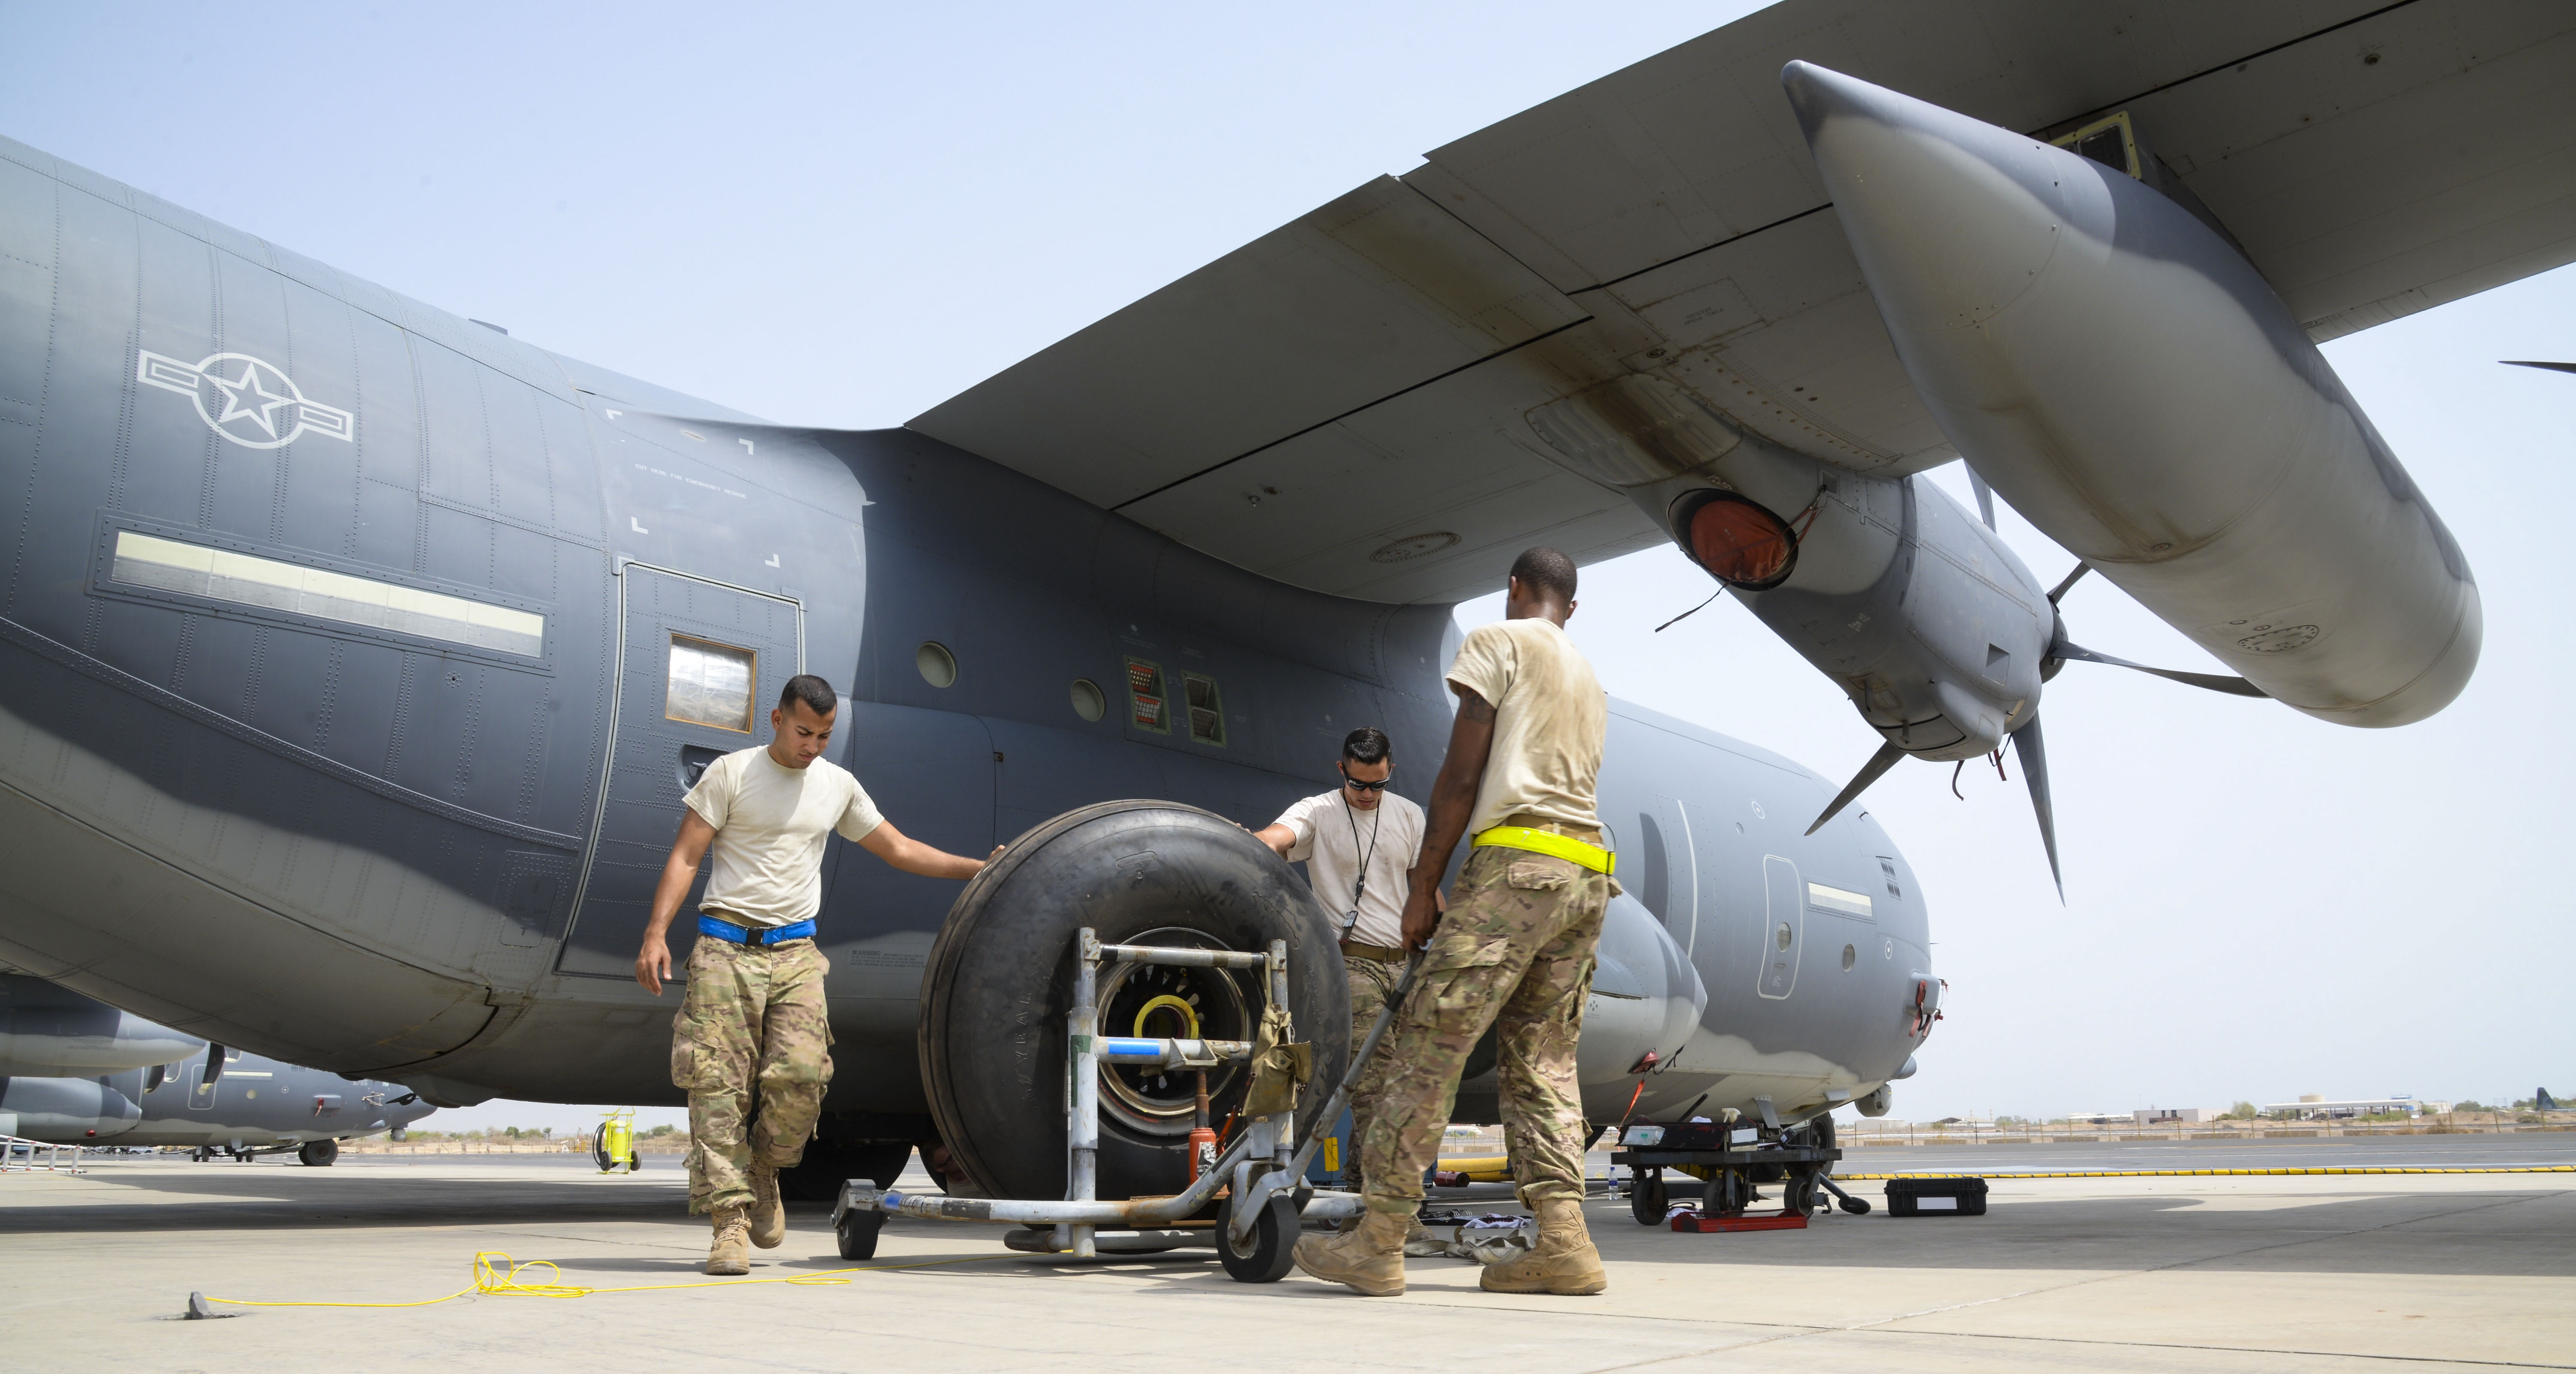 Senior Airman Dabnell Morales, 81st Expeditionary Rescue Squadron aerospace propulsion journeyman, left, Staff Sgt. Michael Patterson, 81st ERQS aerospace propulsion craftsman, center, and Senior Airman Tavaris Scott, 81st ERQS crew chief, replace a C-130J Hercules tire at Camp Lemonnier, Djibouti, July 18, 2016.  The C-130J underwent routine maintenance to continue the mission of personnel recovery and protect and defend United States interests in Eastern Africa. (U.S. Air Force photo by Staff Sgt. Benjamin Raughton)